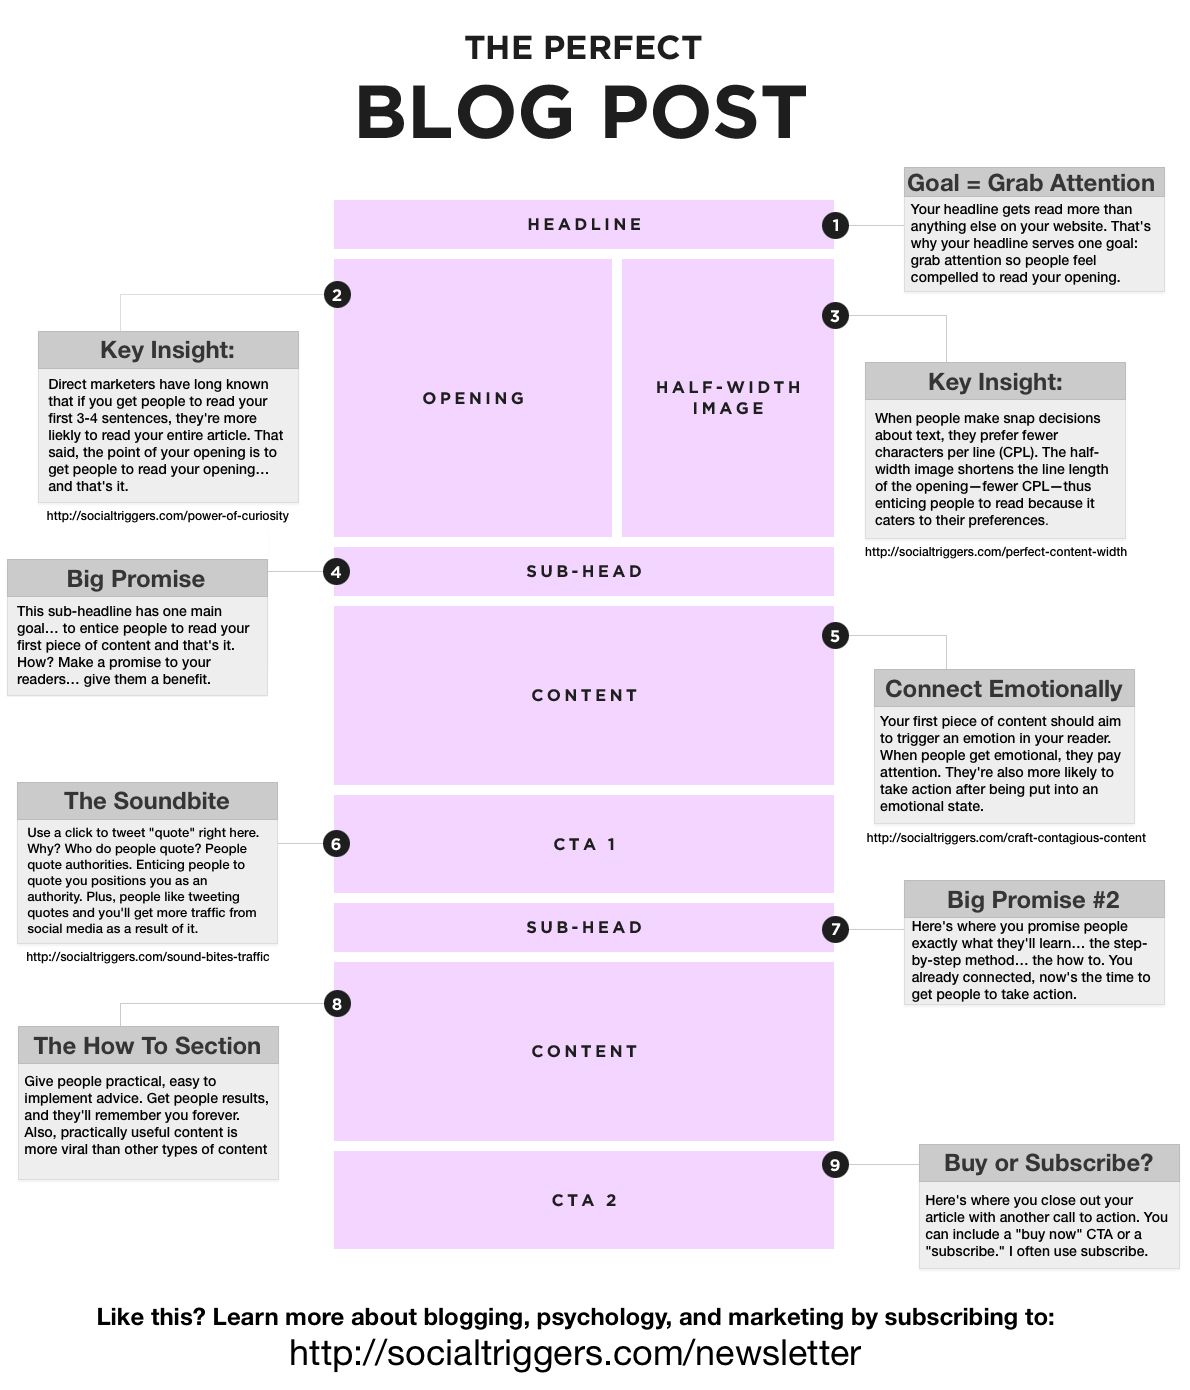 The Perfect Blog Post Guide